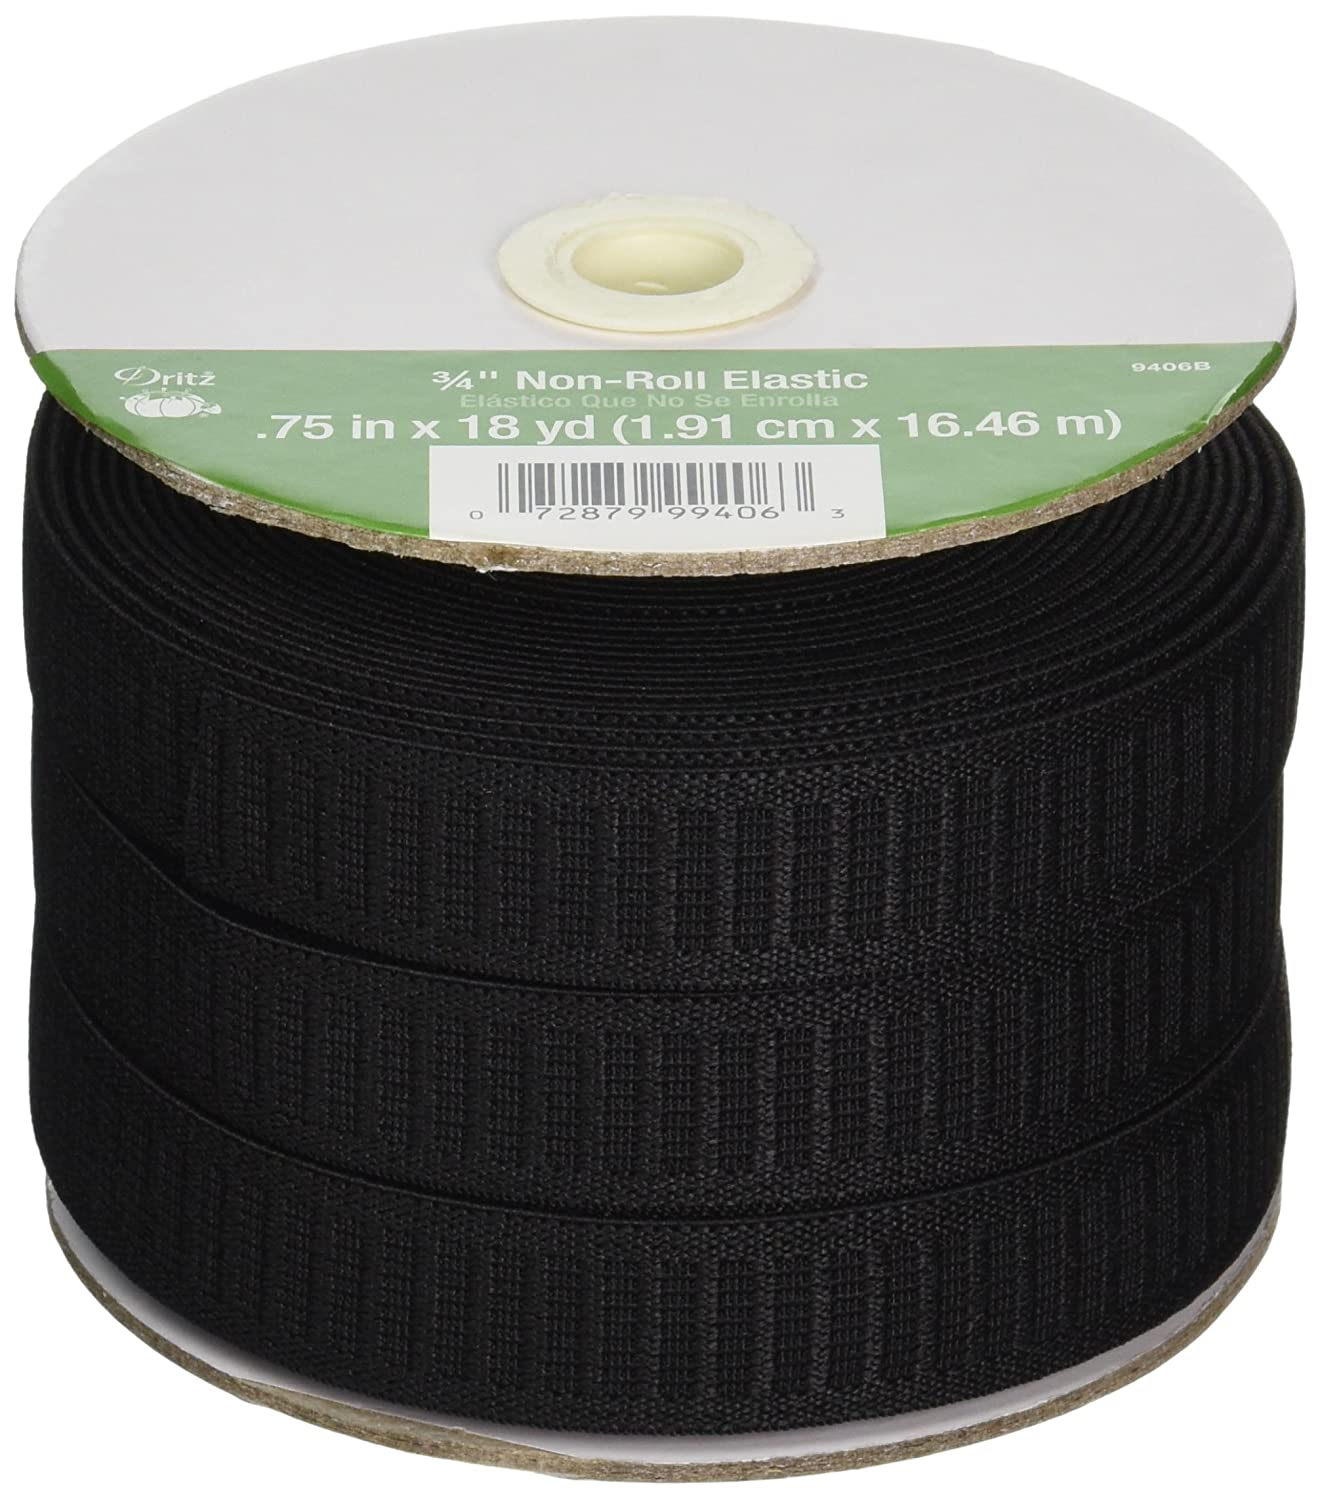 Dritz 9406W Non-Roll Woven Elastic, White, 3/4-Inch by 18-Yard Notions - In Network 9406-W